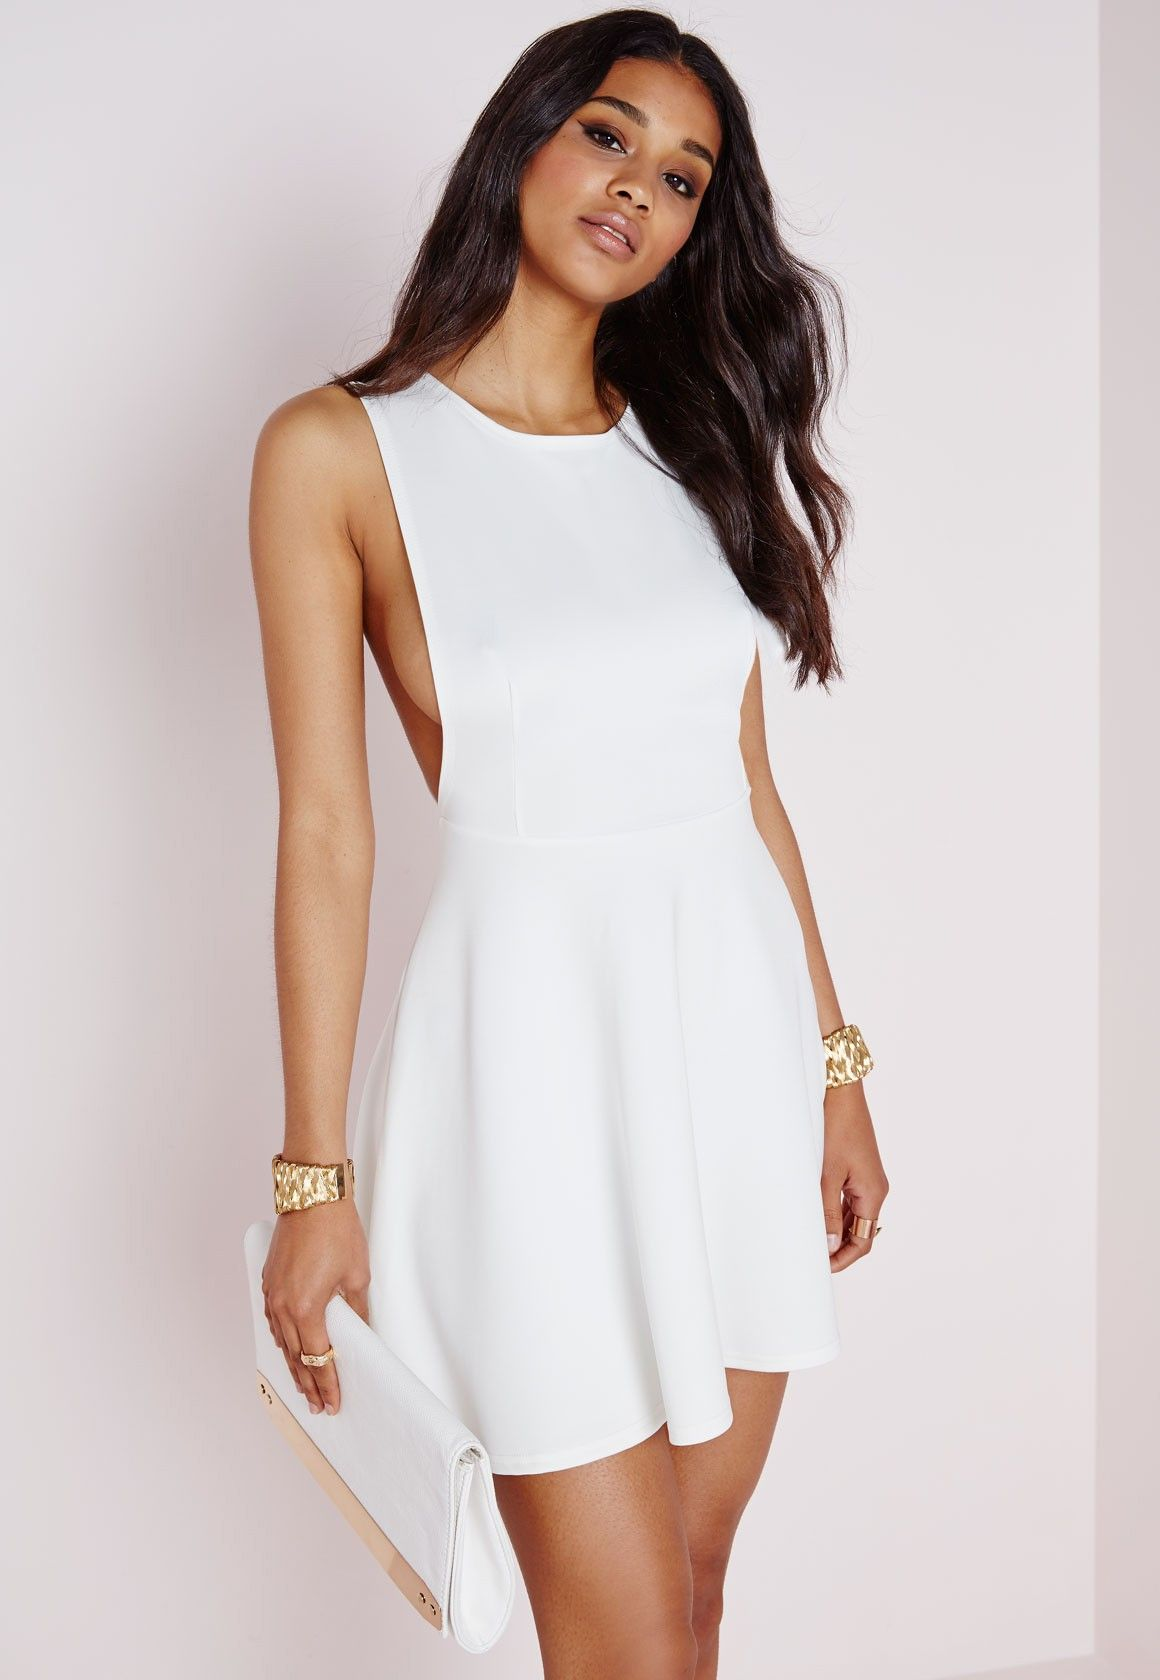 ae6c0a6f77 Look seriously seductive this season in this white skater dress and ensure  all eyes on you